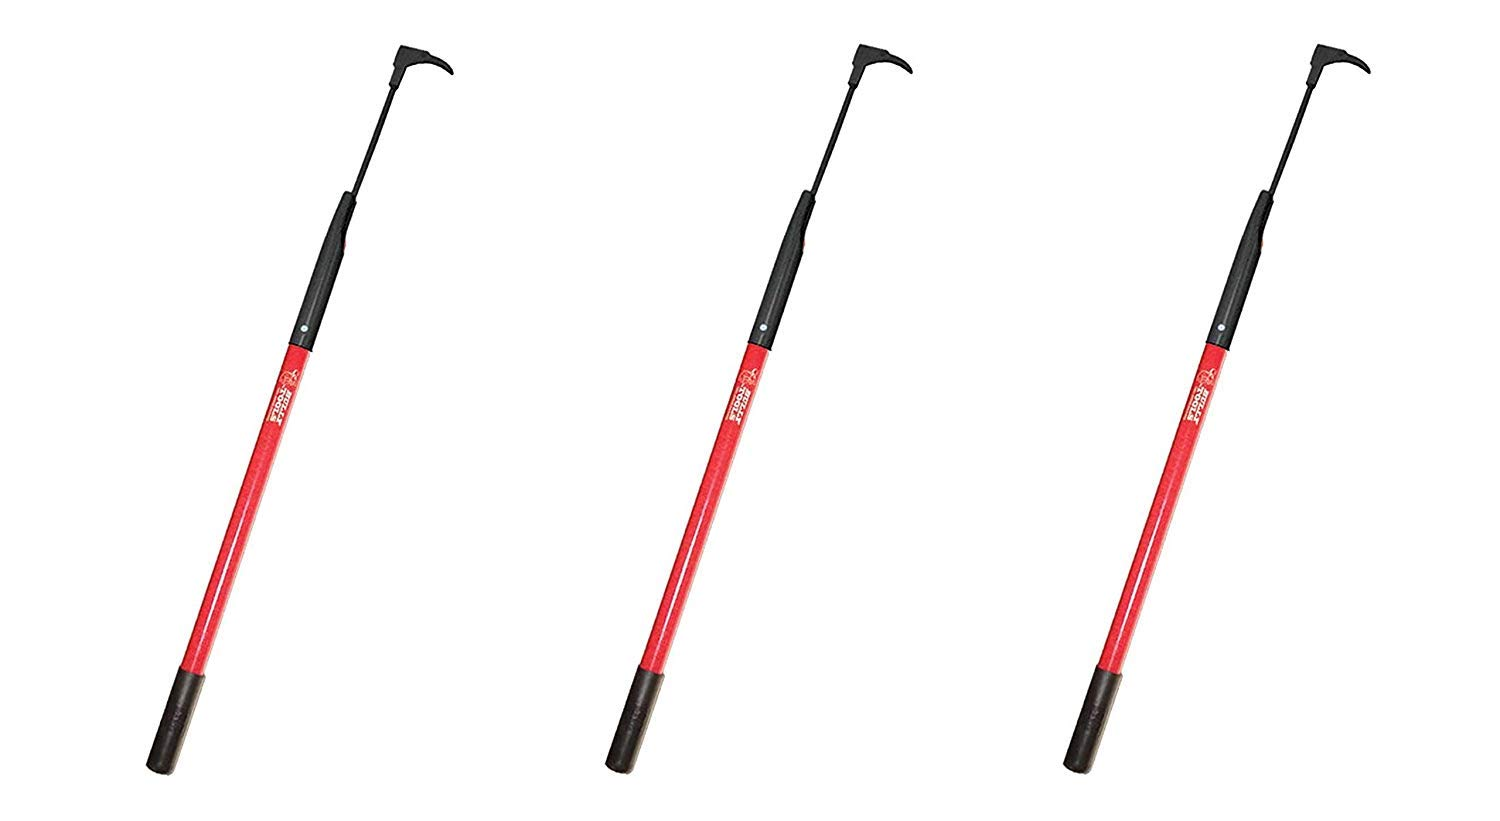 Bully Tools 92395 7-Gauge 3-Inch Bean Hook/Paver Weeder with Dual-Sided Blade (Pack of 3)